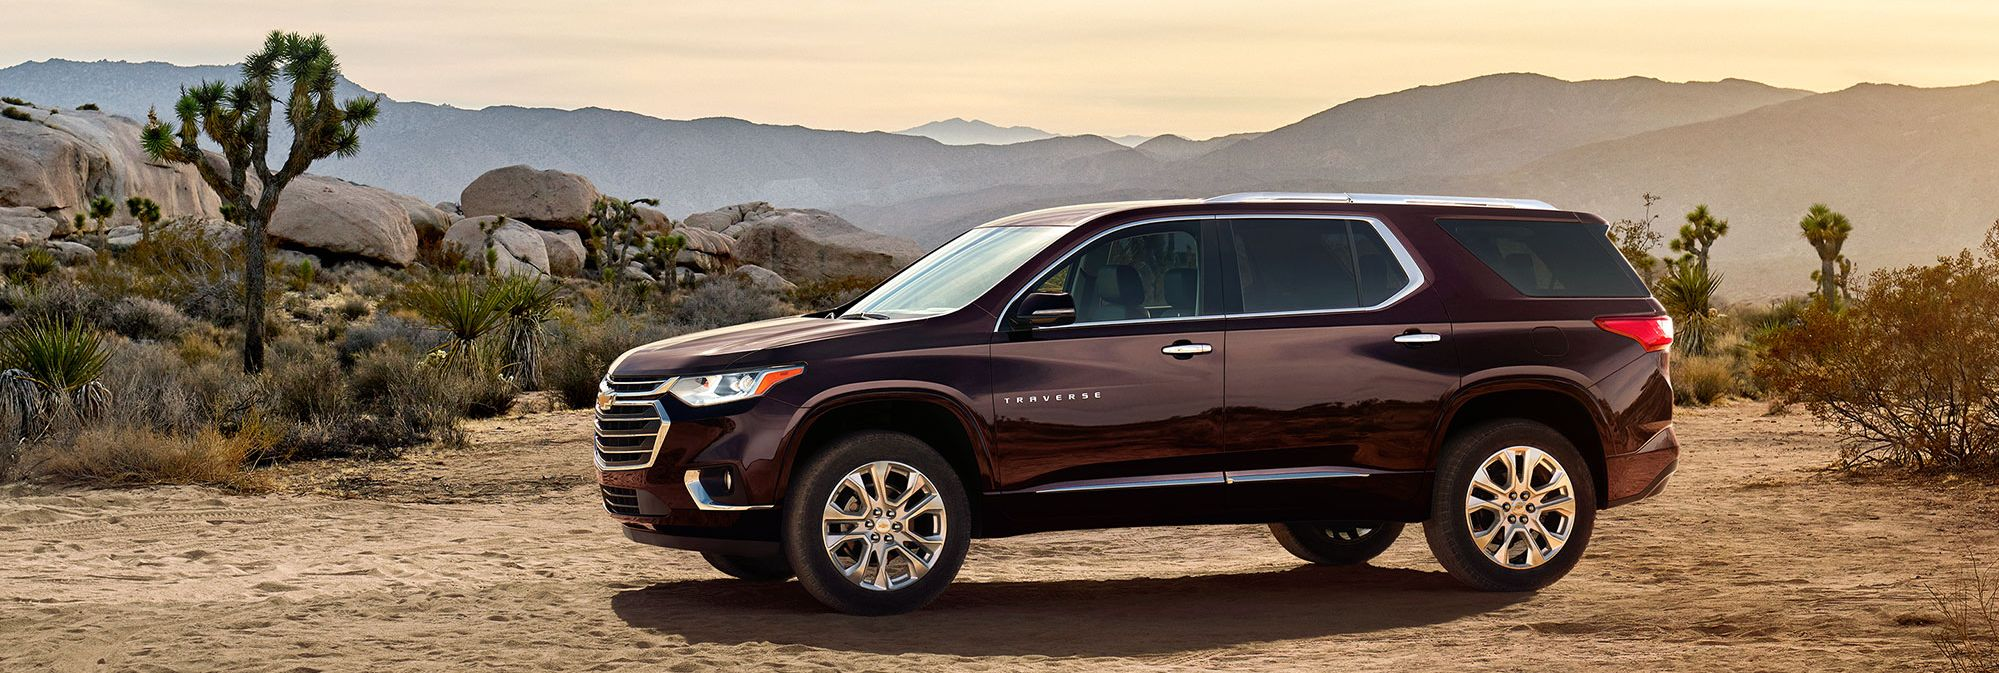 2019 Chevrolet Traverse for Sale near Worthington, MN